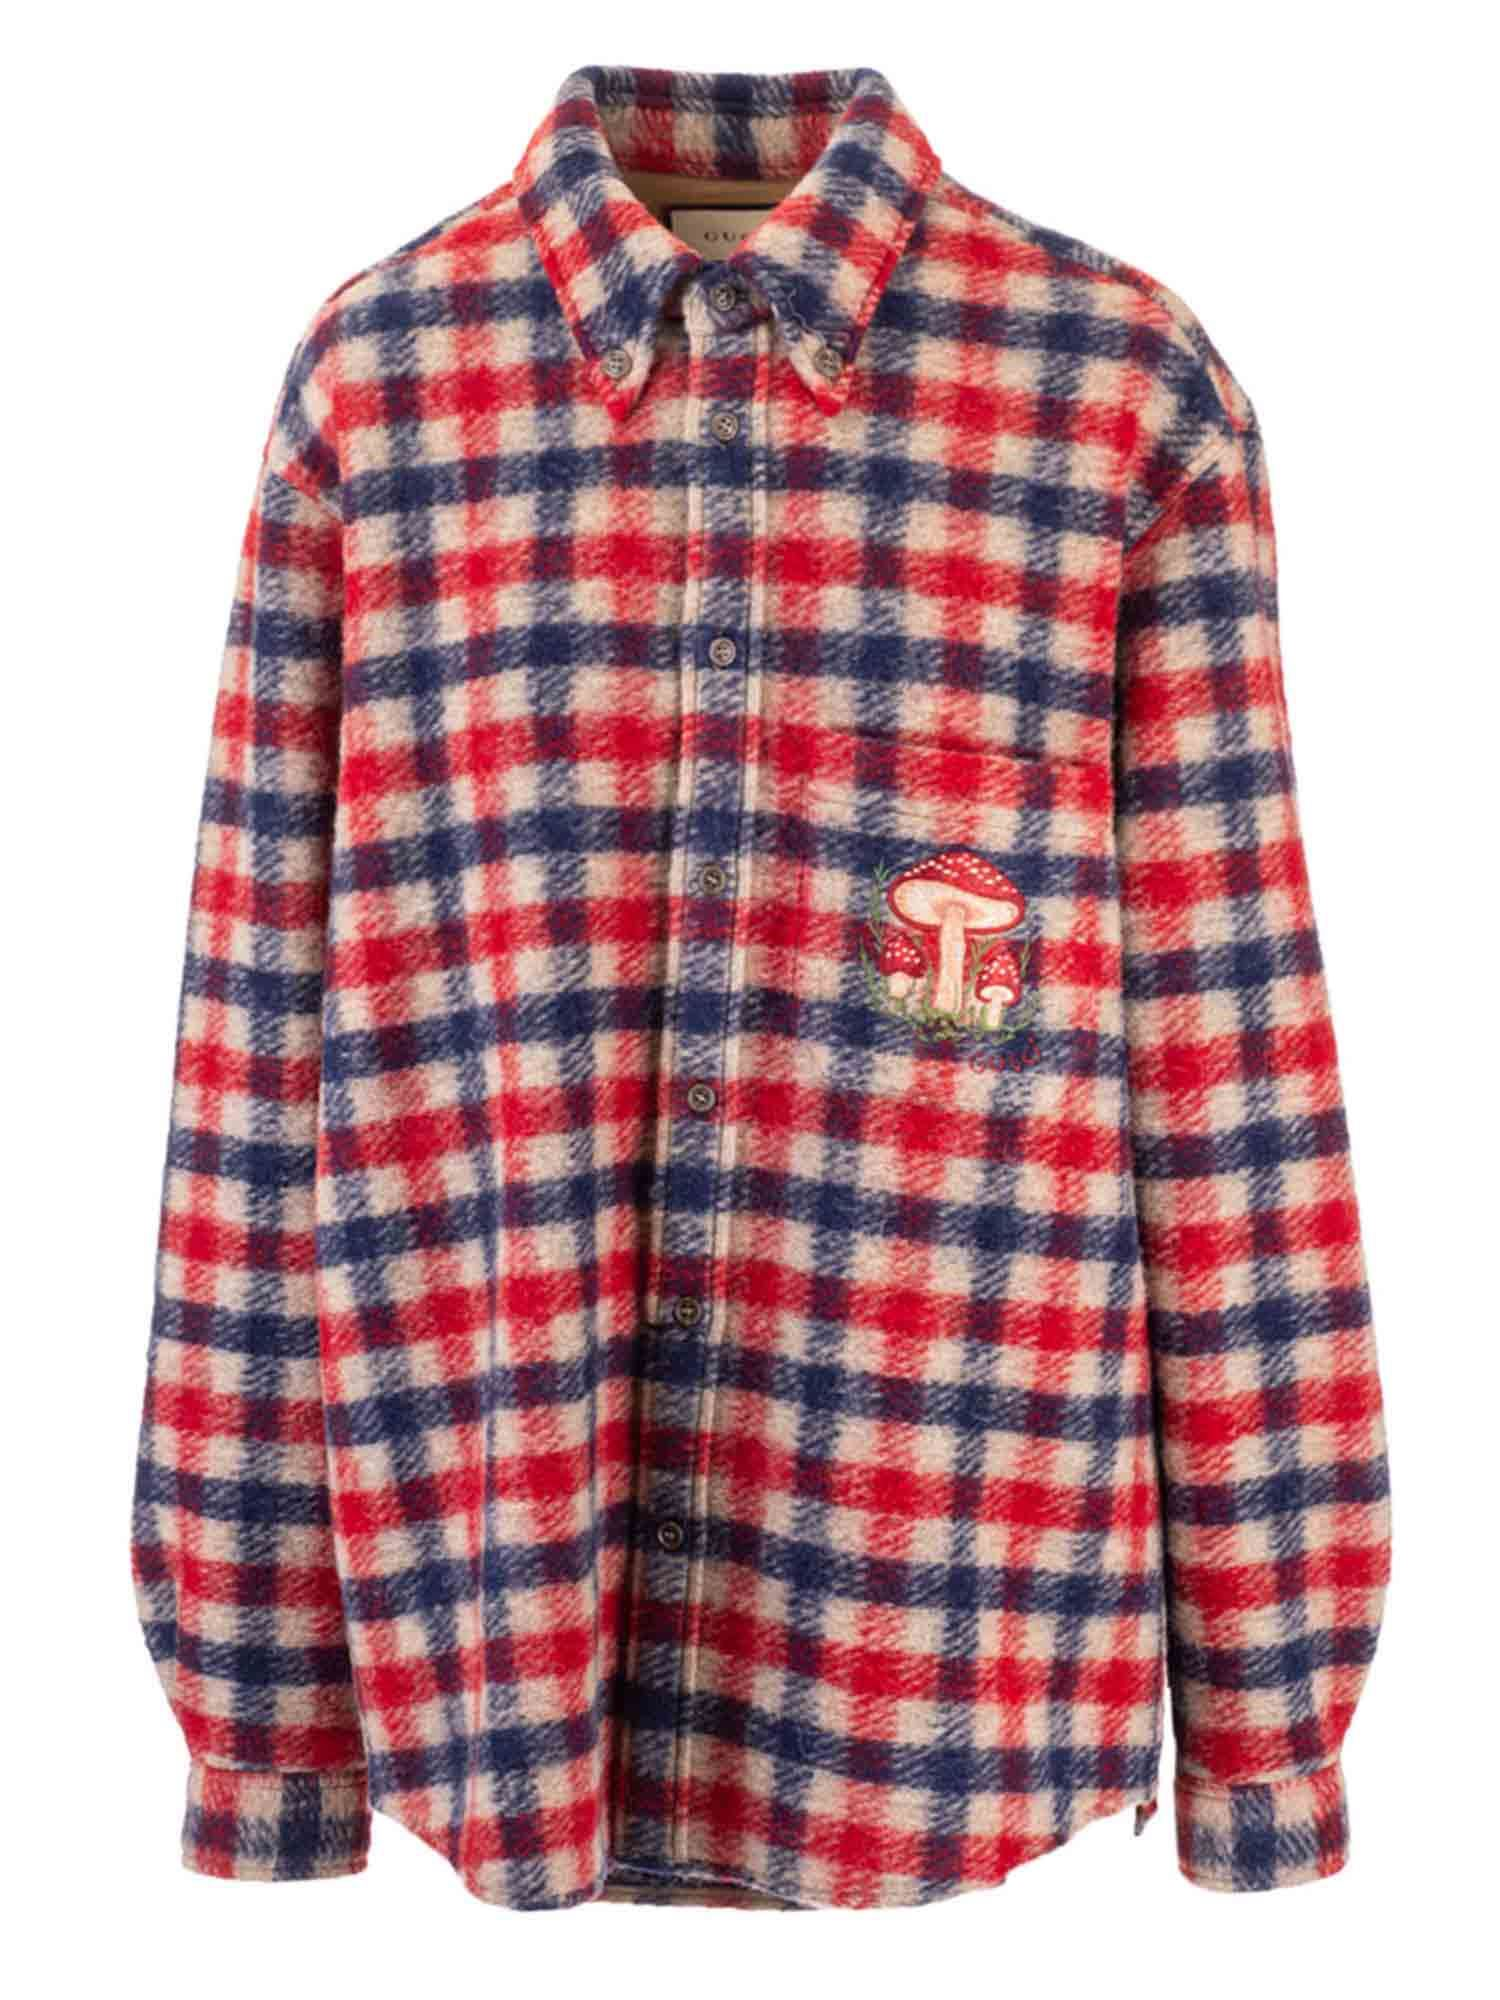 Gucci CHECKED SHIRT IN RED AND BLUE